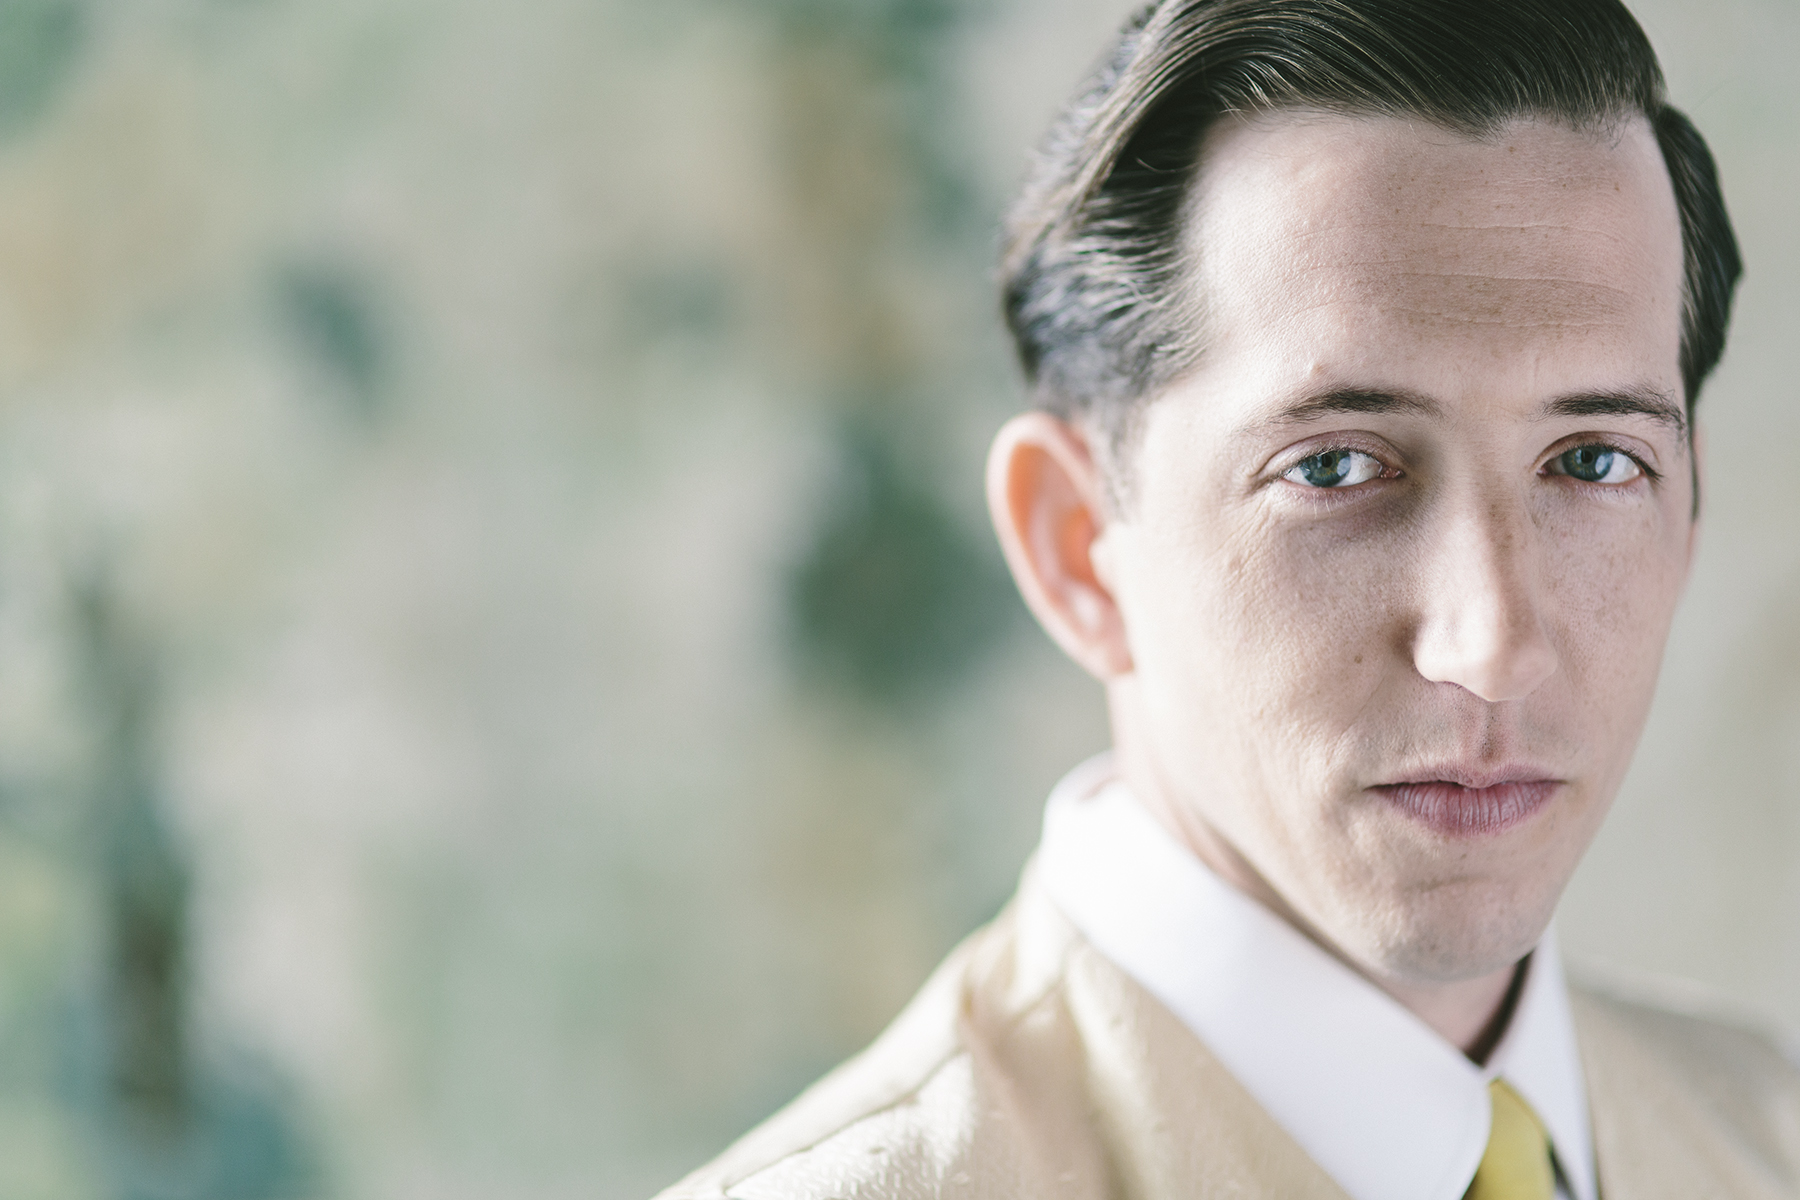 New Lafarge Cem : Pokey lafarge set to blow 'the top off expectations with